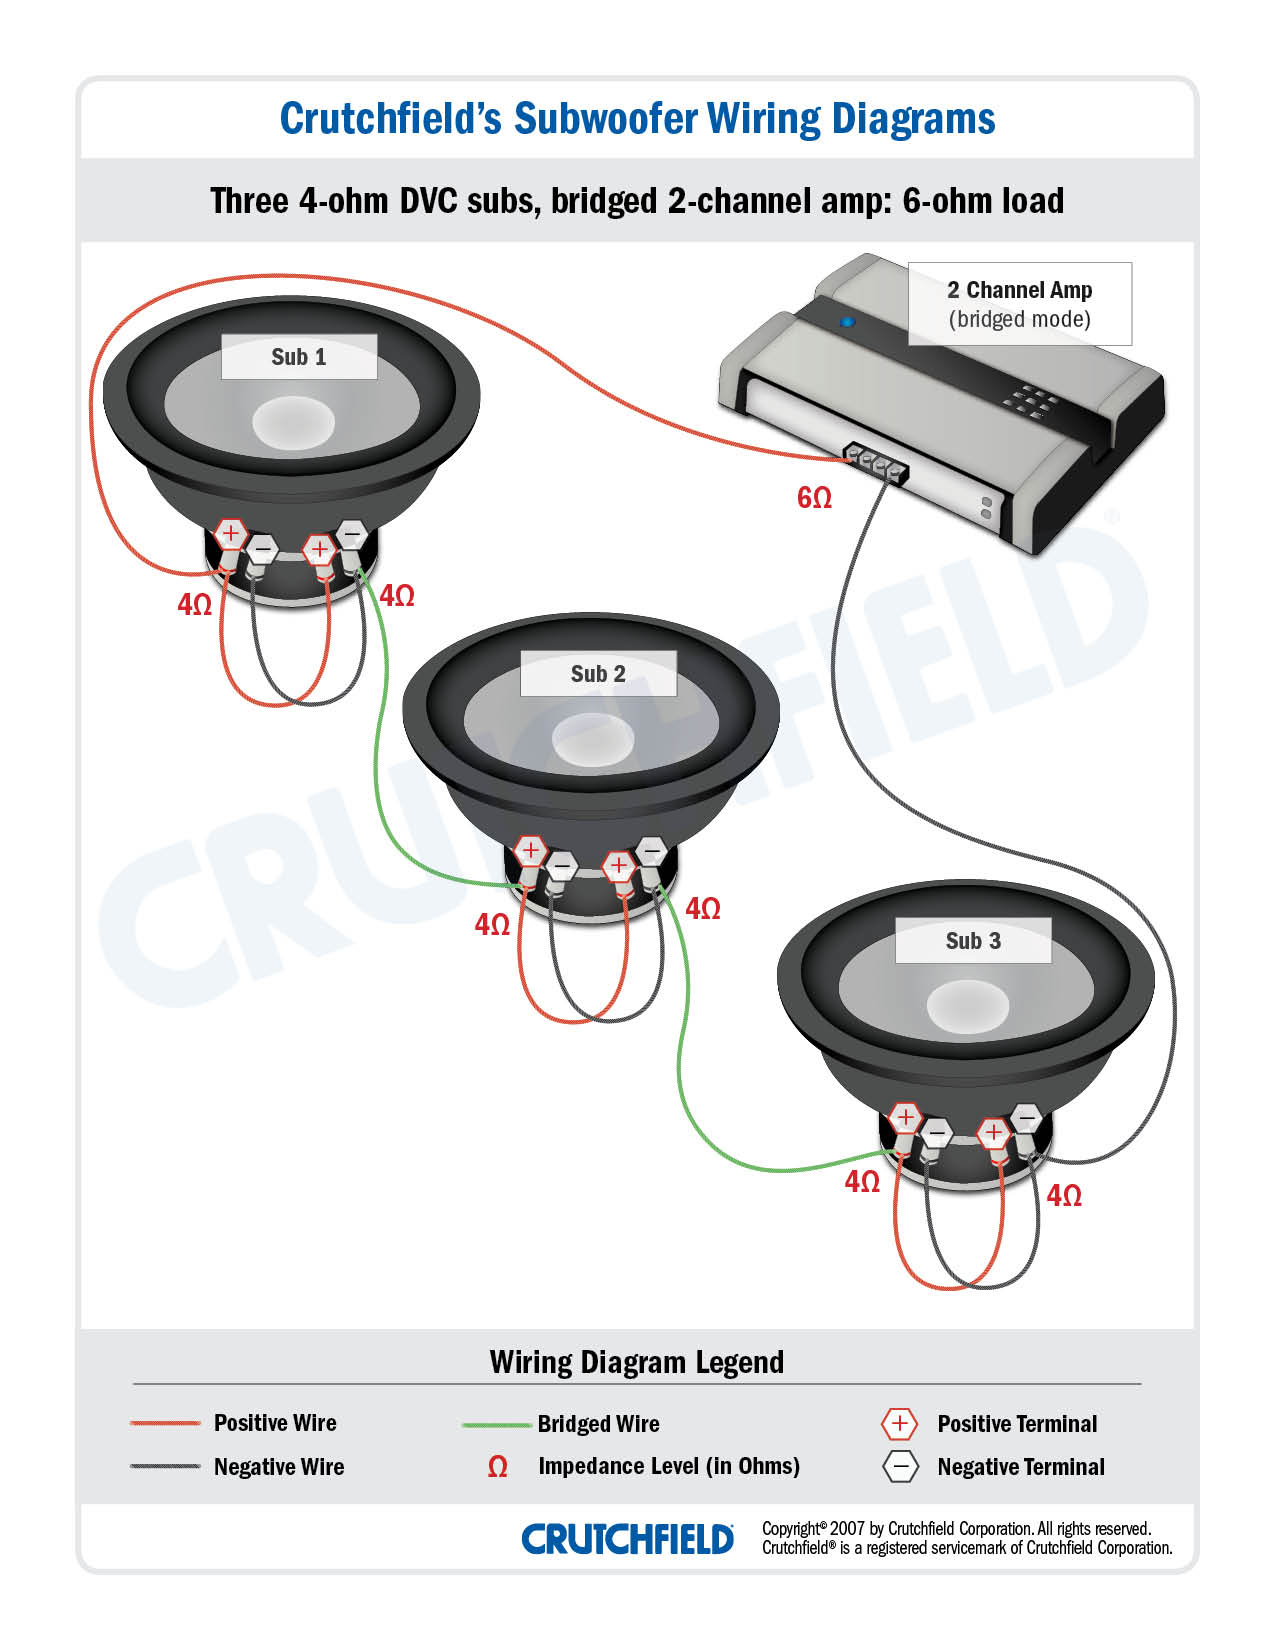 Wiring Subwoofers — What's All This About Ohms? - Speaker Wiring Diagram Series Vs Parallel